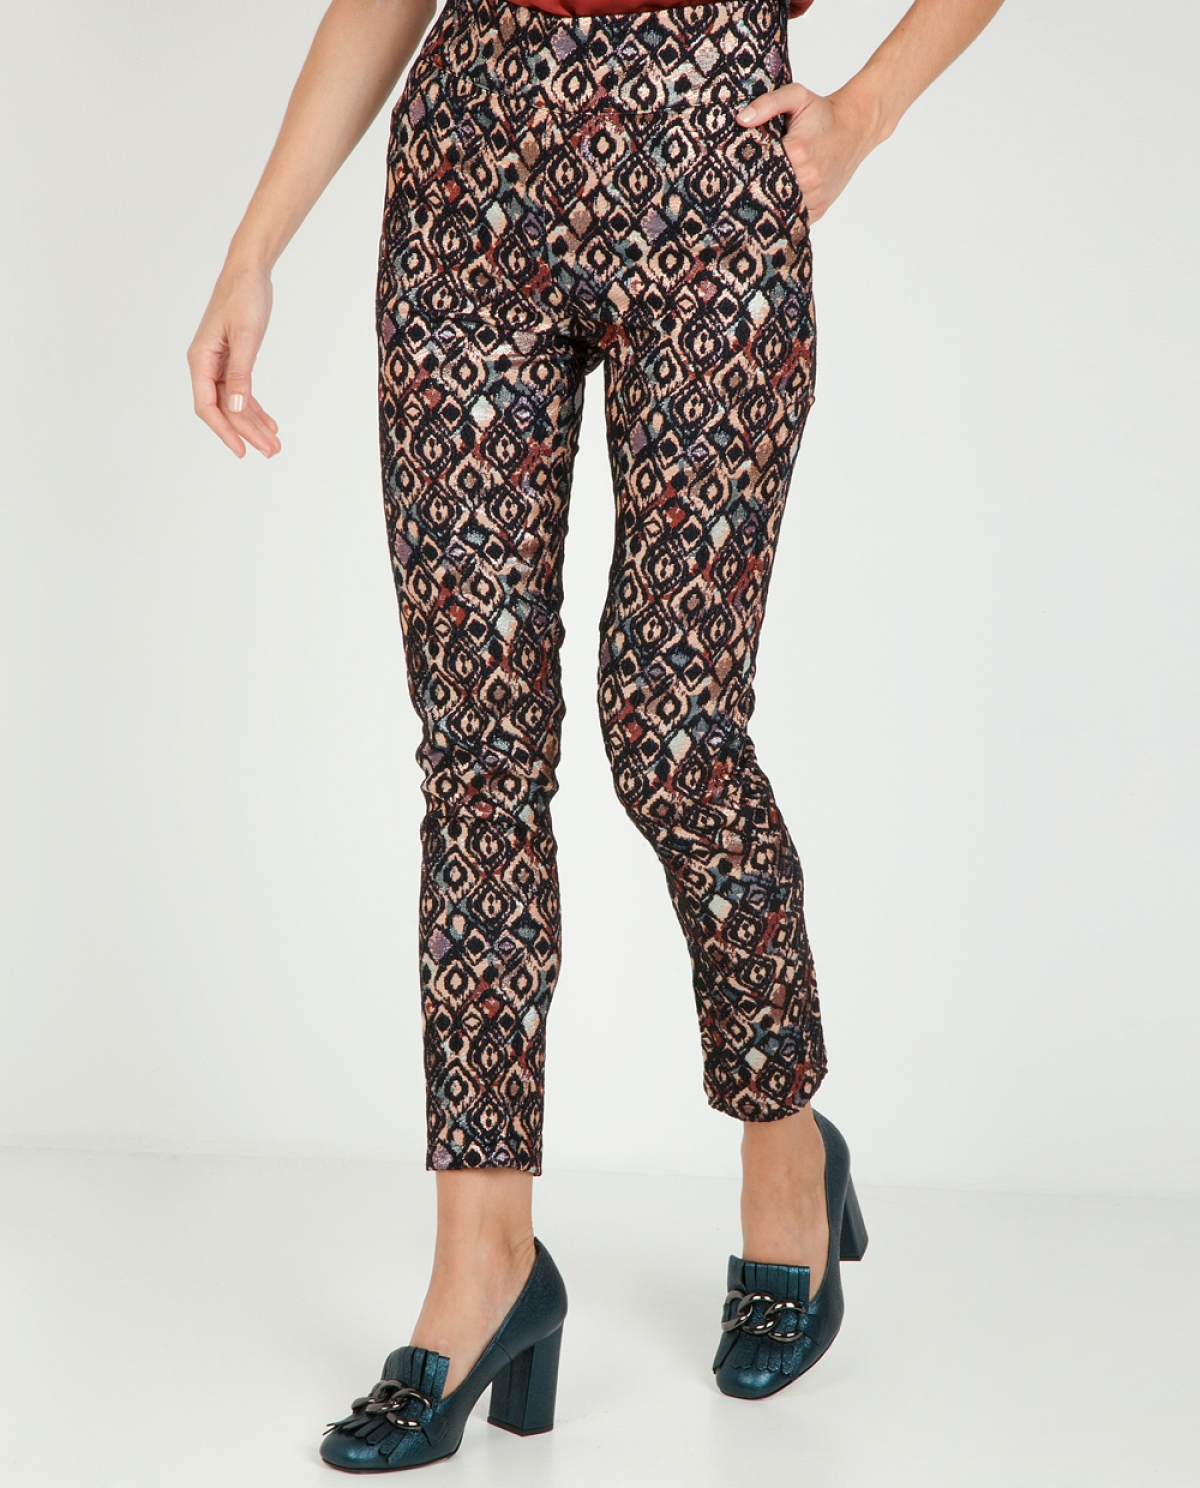 Nightfall Shimmery Skinny Trousers